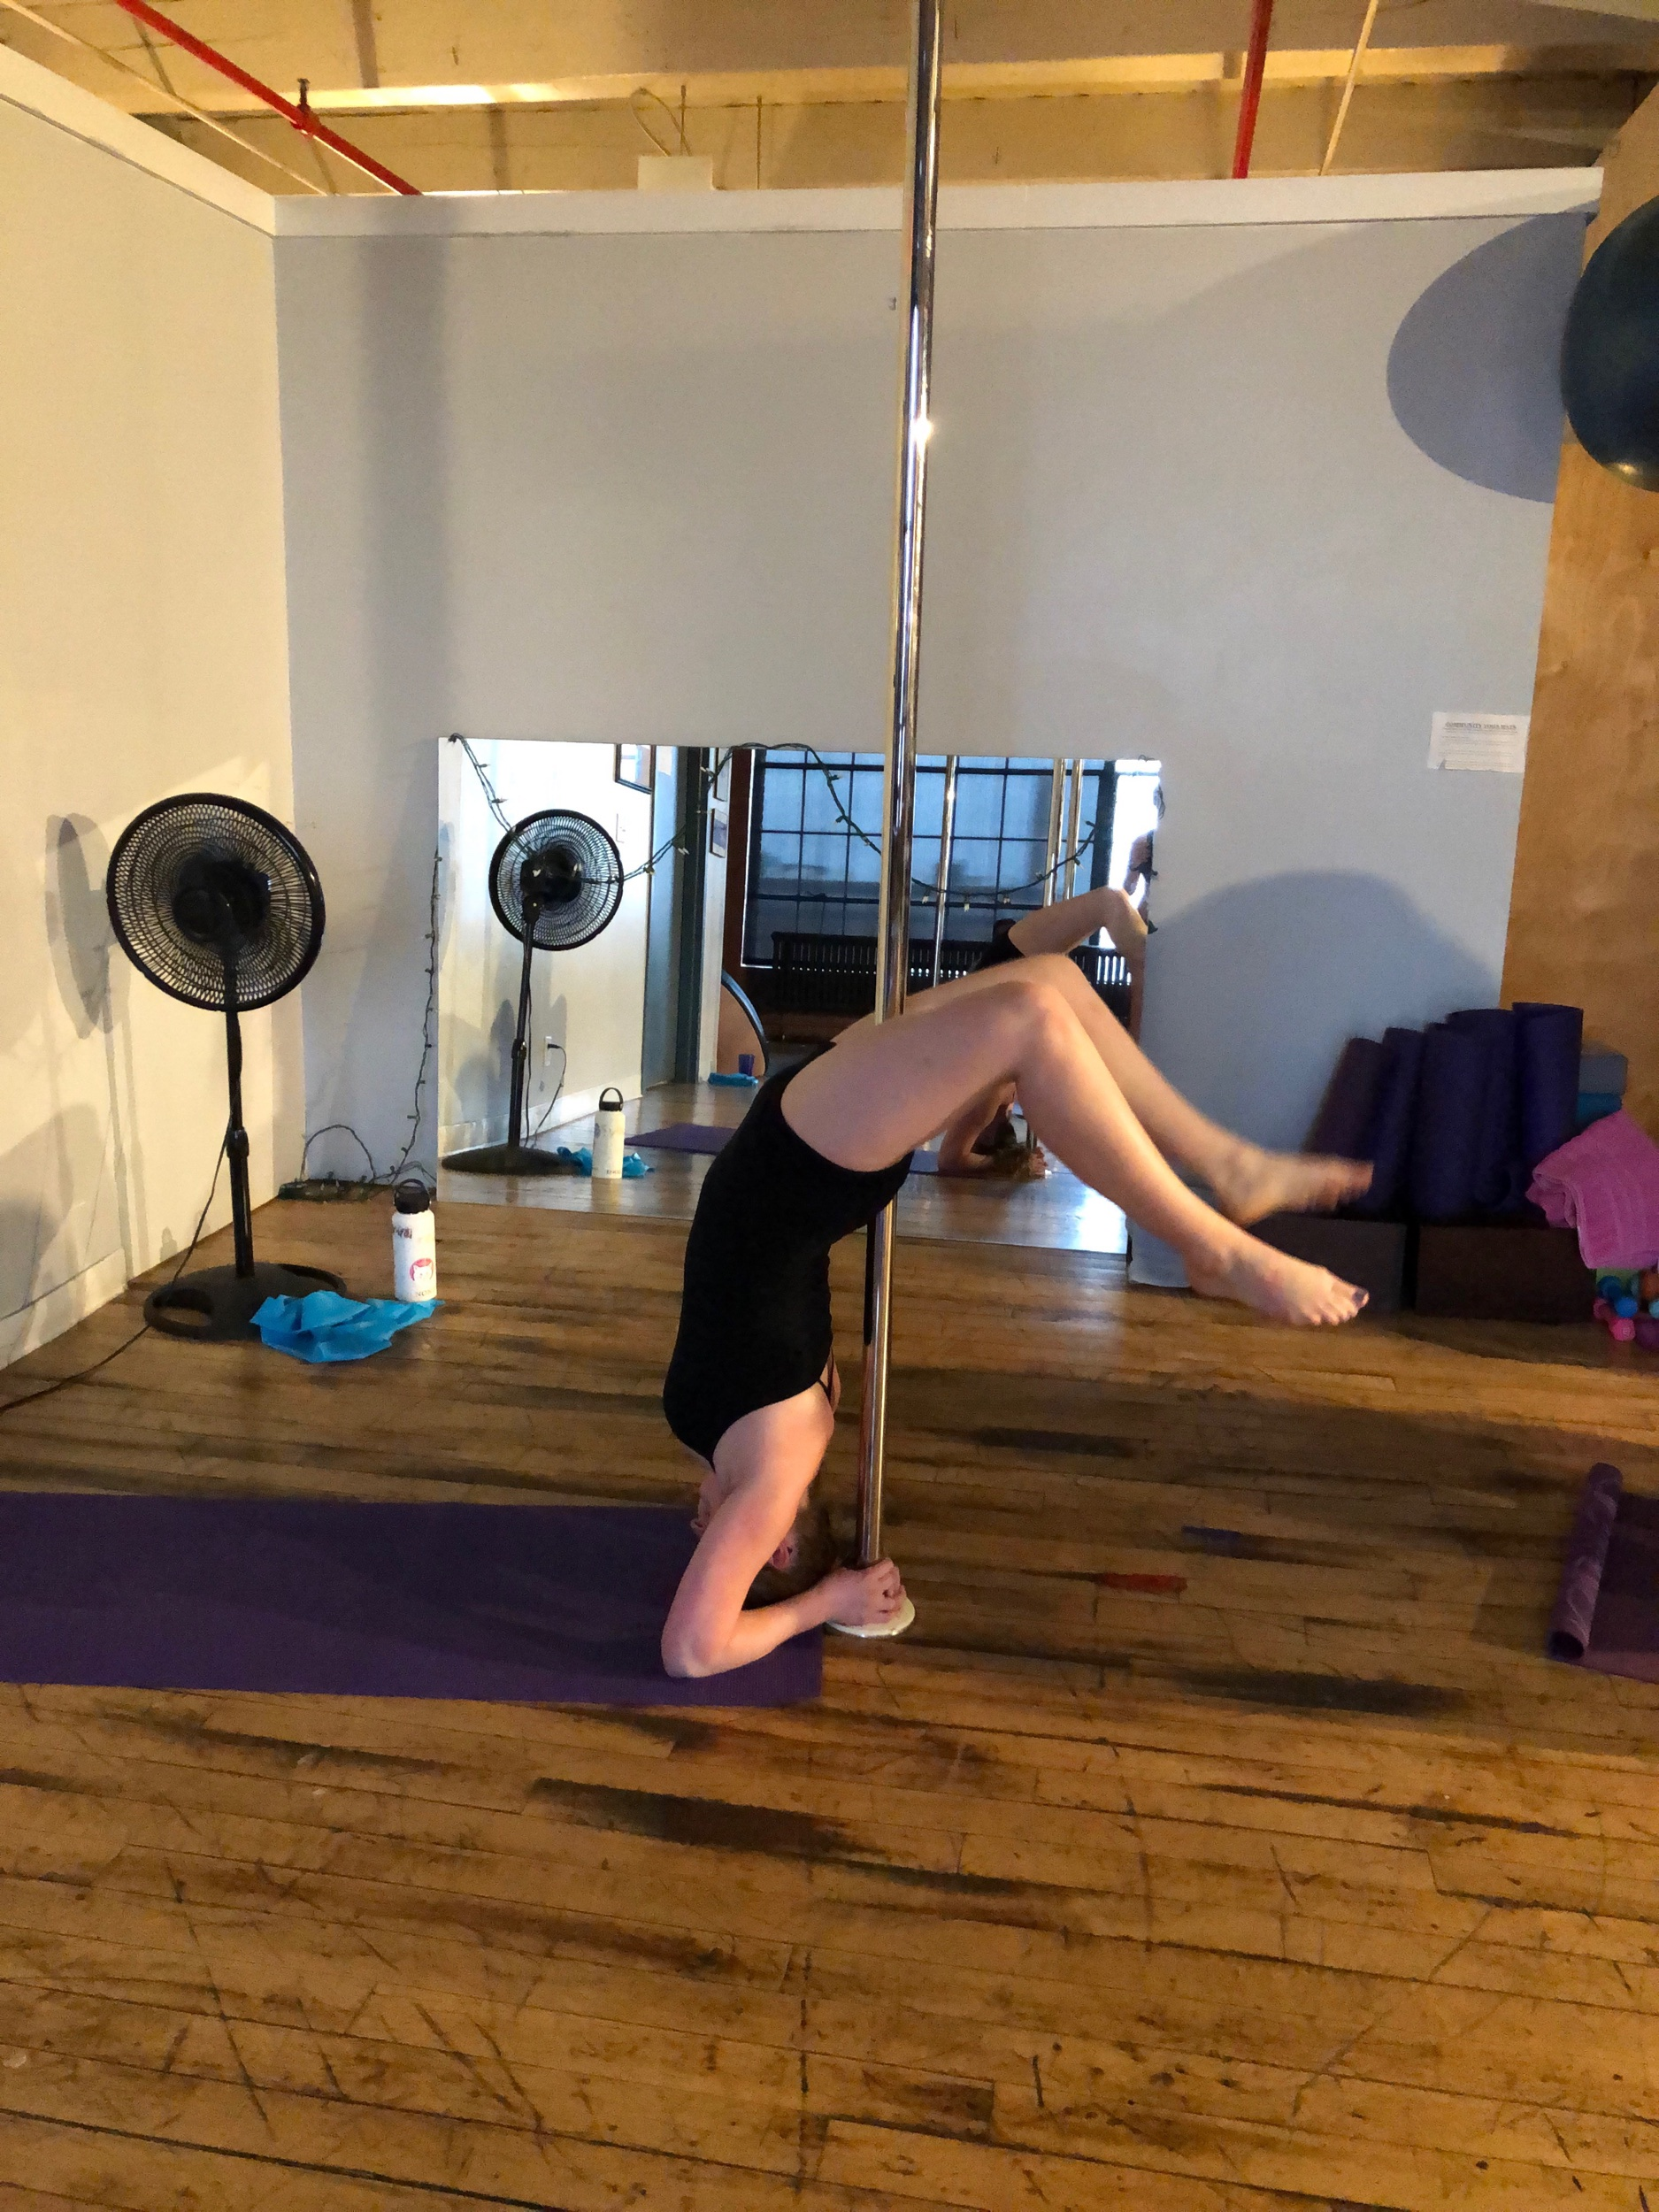 Abby and I go to pole, and it hurt a lot. Thankfully, this pose didn't require any intense friction on the thigh meat.